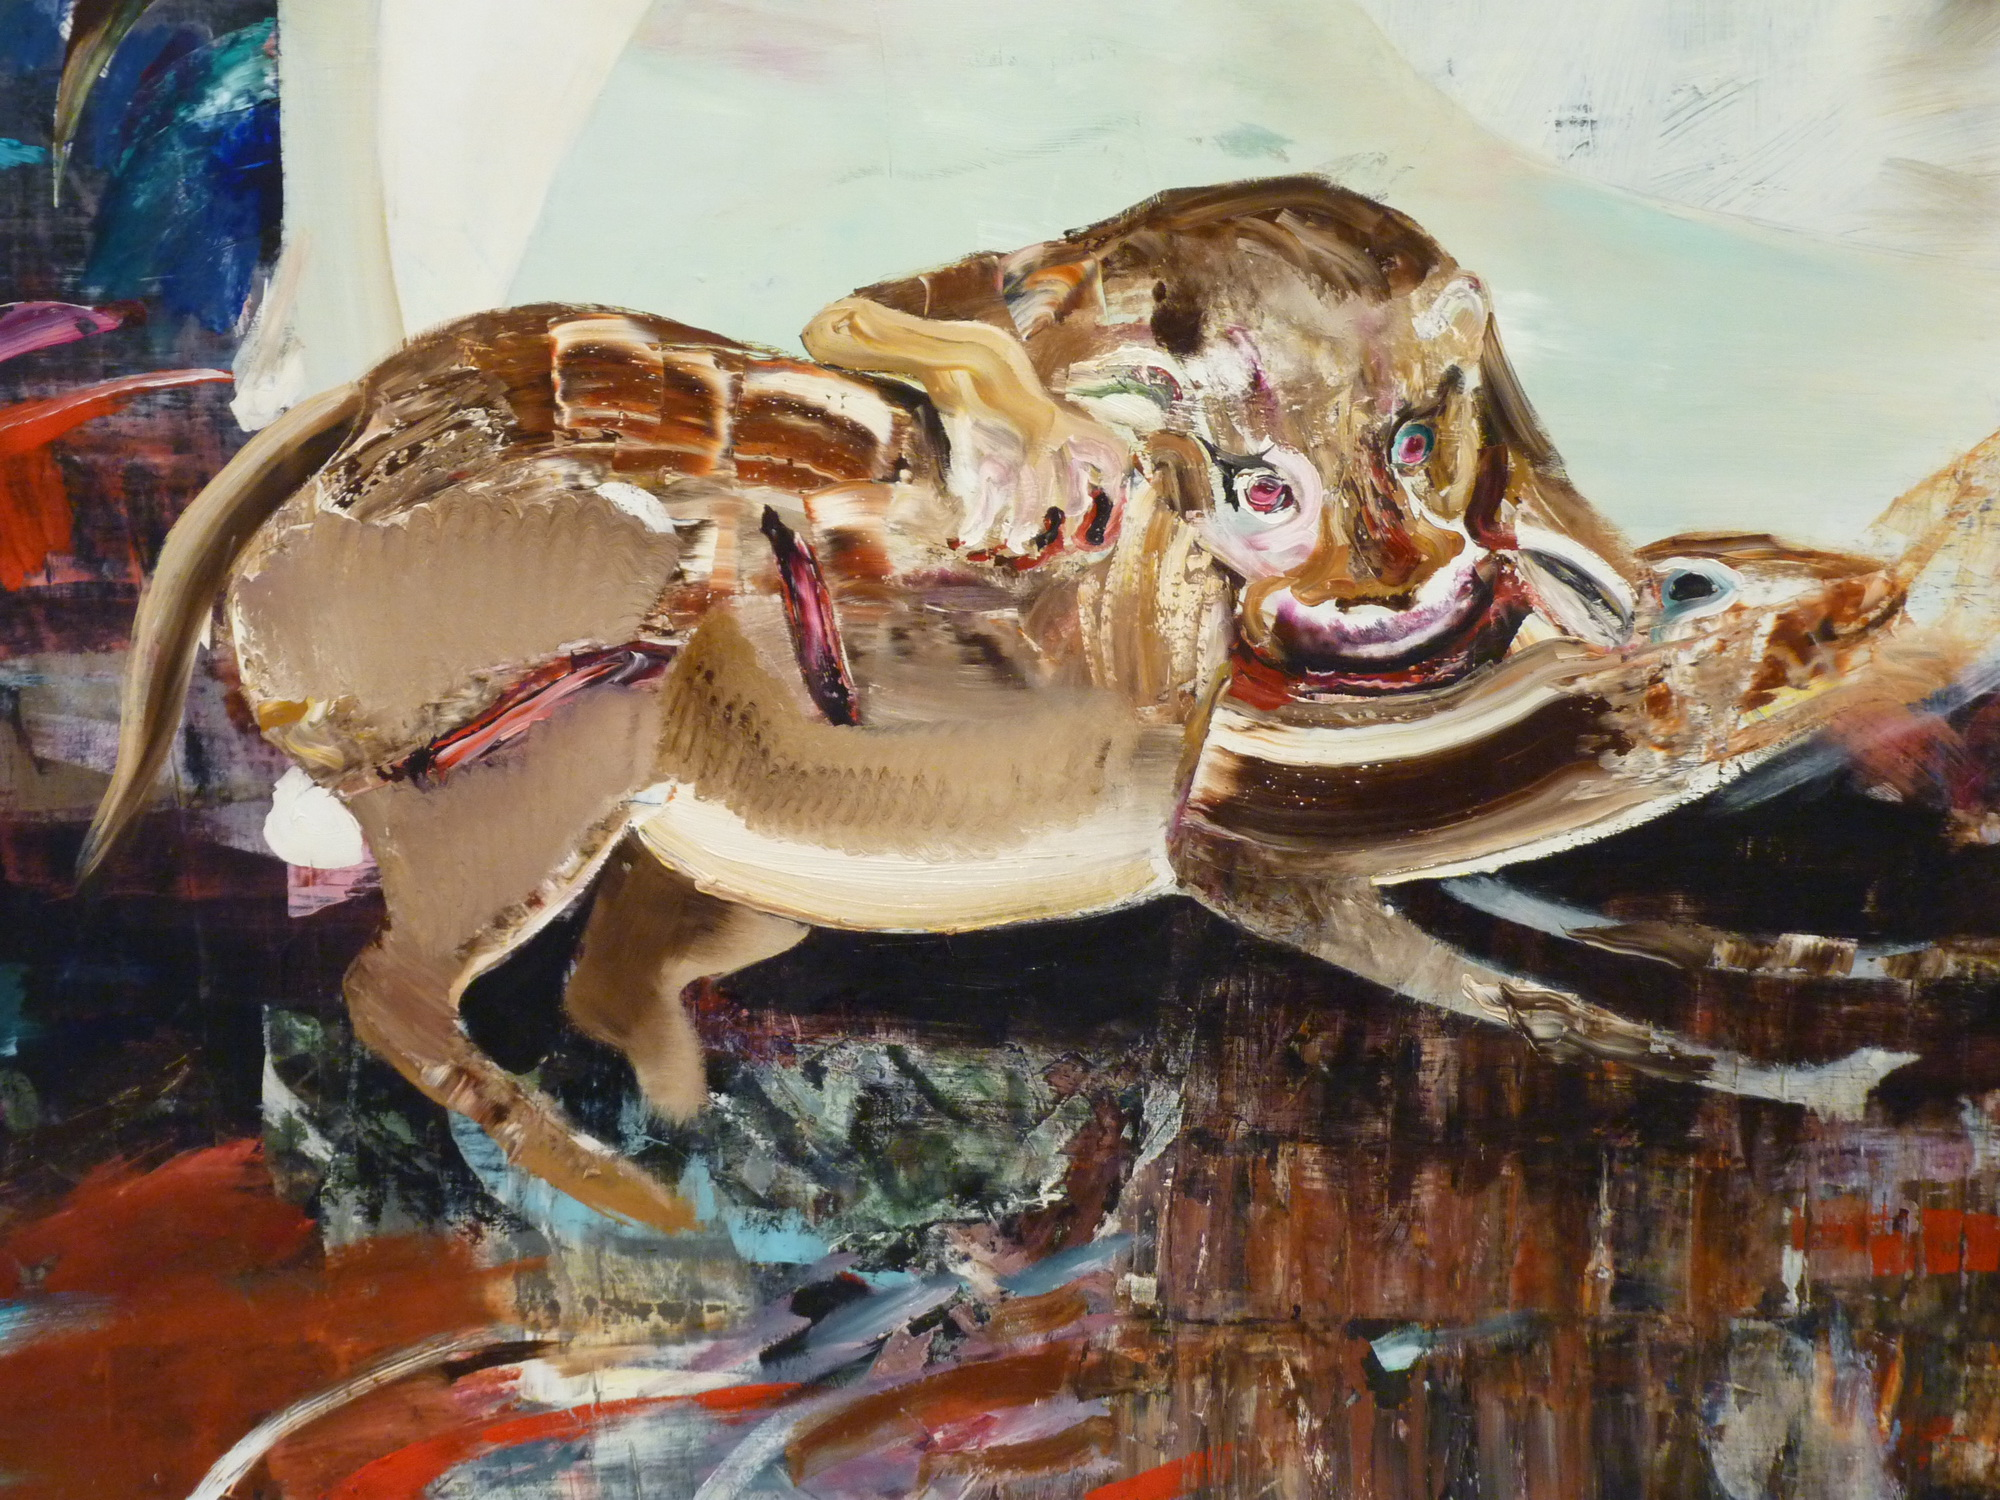 019-2  Adrian Ghenie  ne1977  the hungry lion 230x170cm 2015